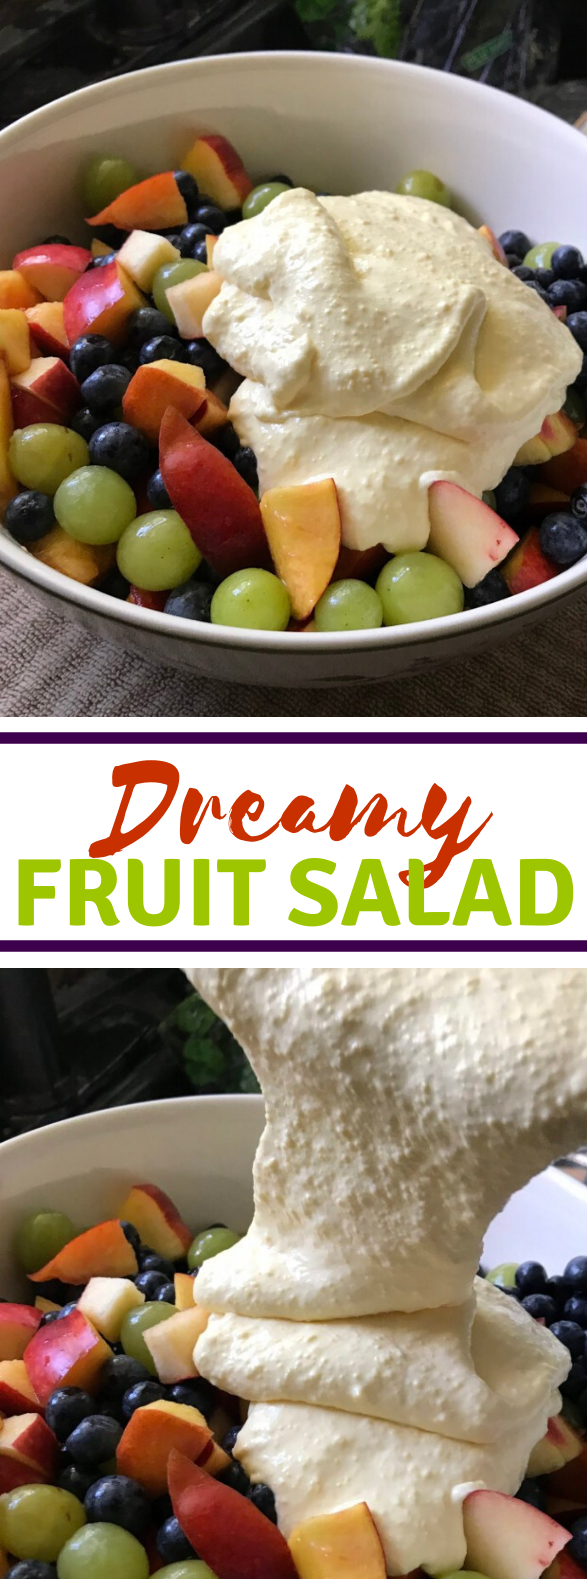 DREAMY FRUIT SALAD #healthier #diet